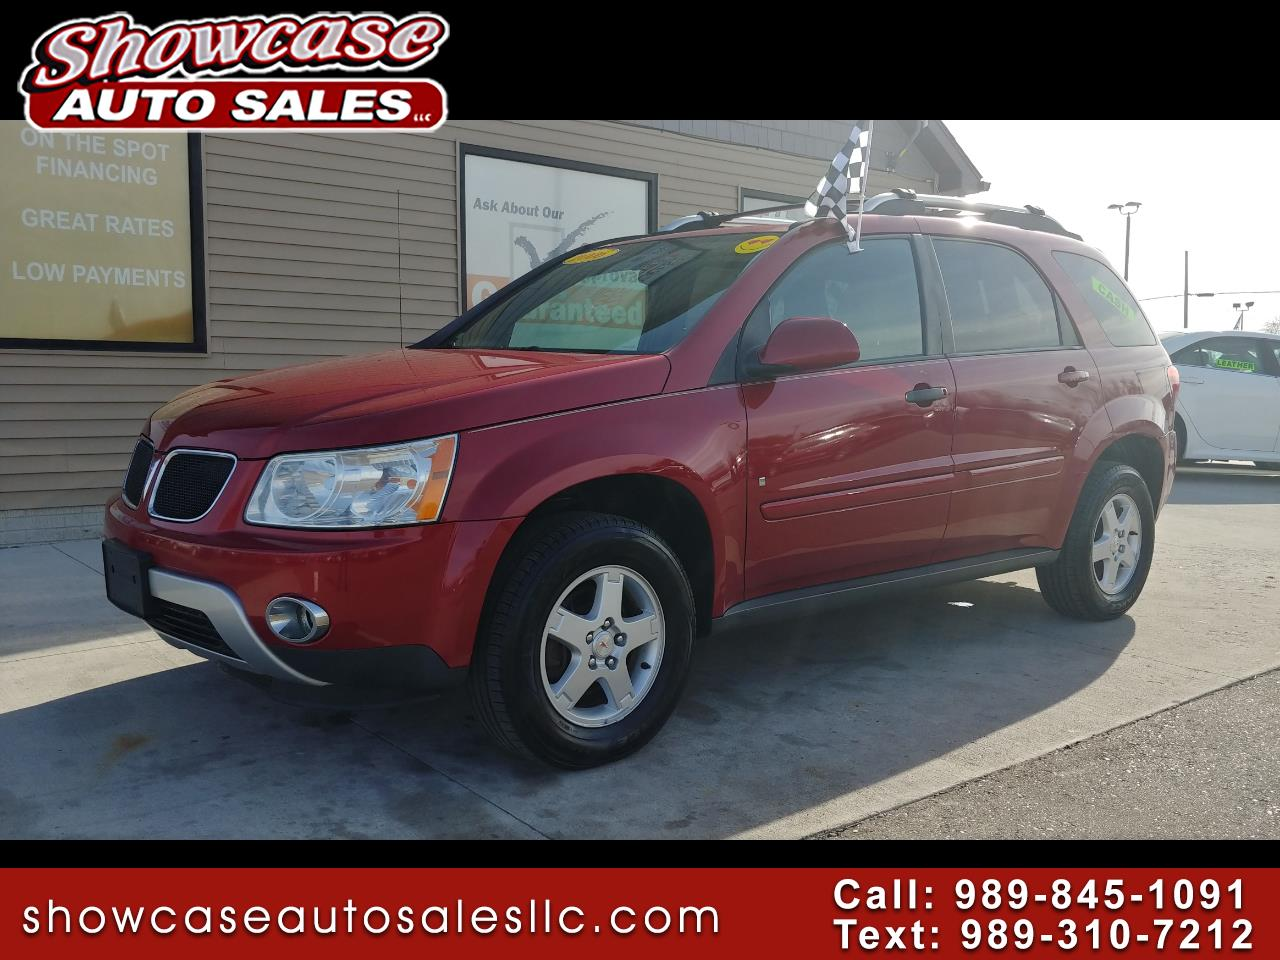 used 2006 pontiac torrent awd 4dr for sale in chesaning mi 48616 showcase auto sales. Black Bedroom Furniture Sets. Home Design Ideas